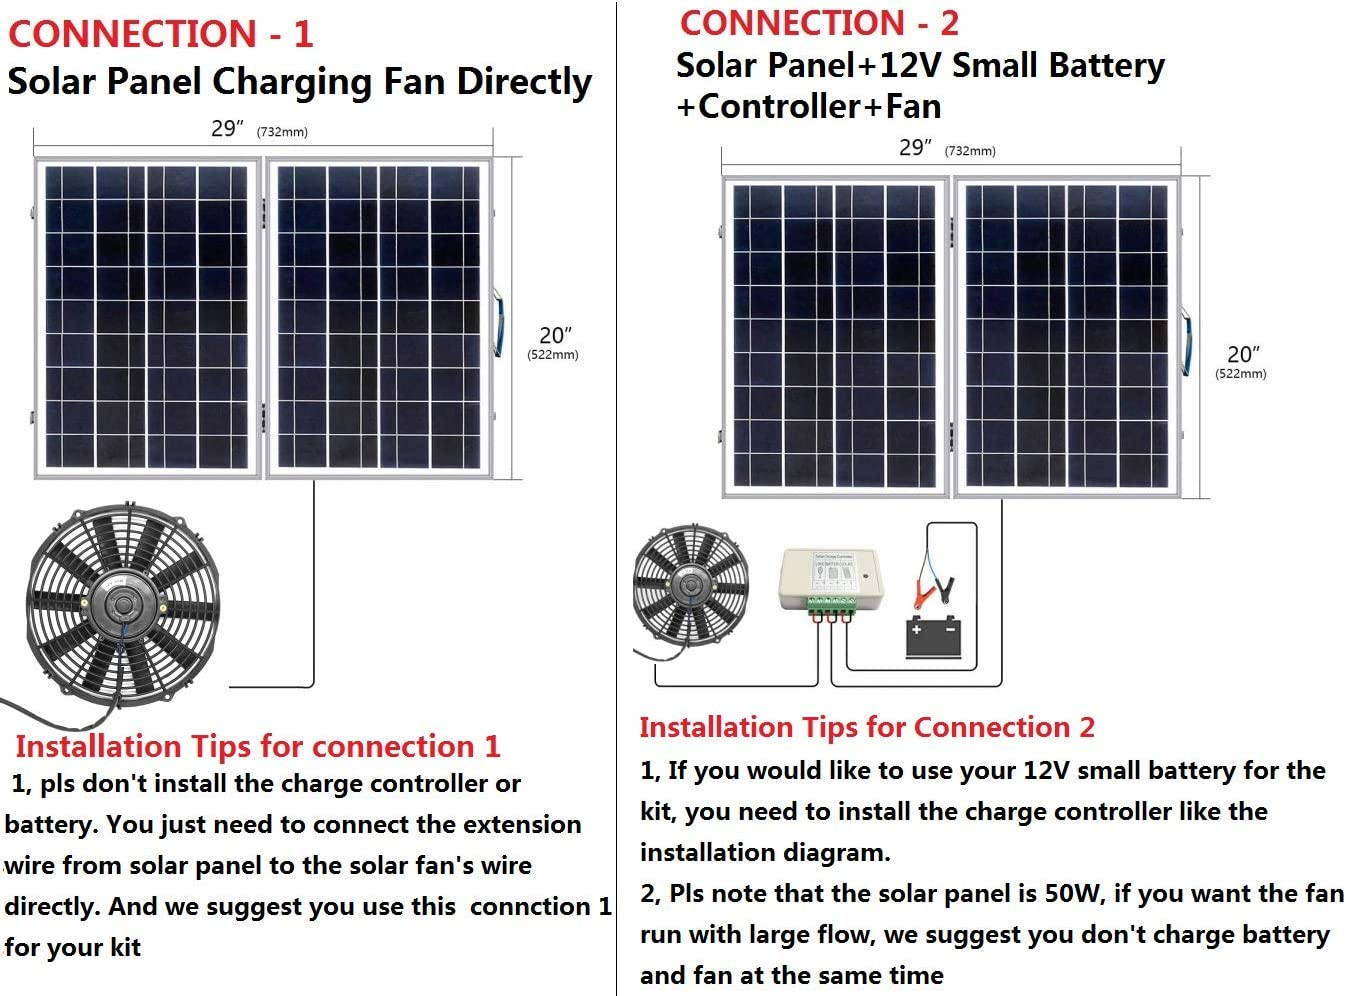 Amazon.com: ECO-WORTHY 50W Solar Panel with Powerful 80W 12 inch Solar  Attic Fan and 2pcs 7Ah Battery Backup, Cools and Ventilates Your House,  Bathroom, Kitchen, Garage or RV and Protects Against Moisture:Amazon.com